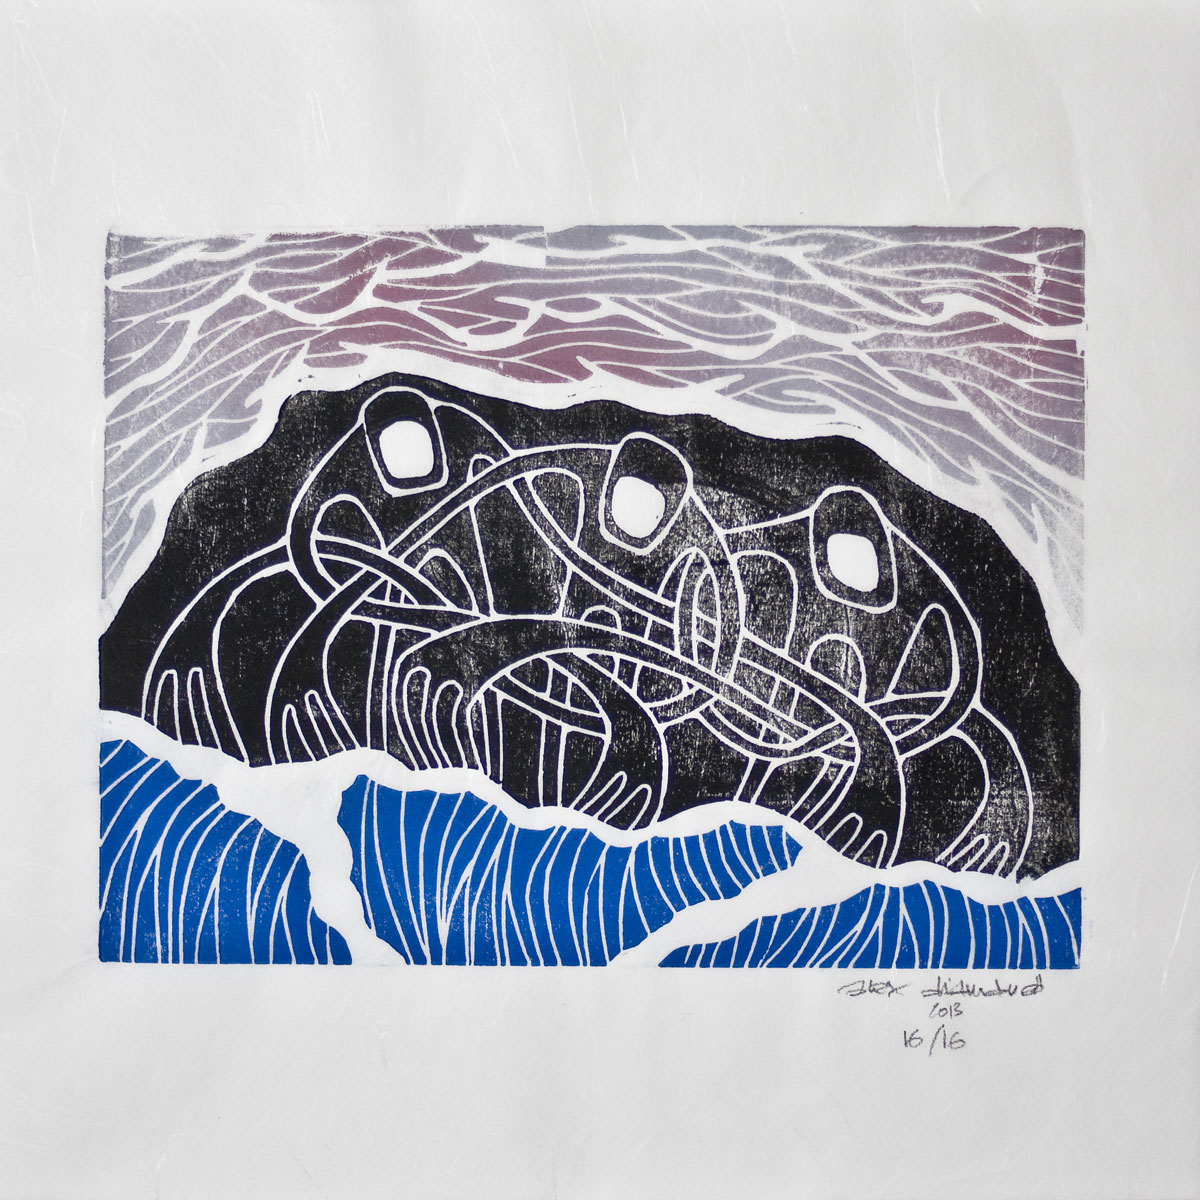 new woodblock print: 'theskyandthesea', available online (click image to visit the print-shop)